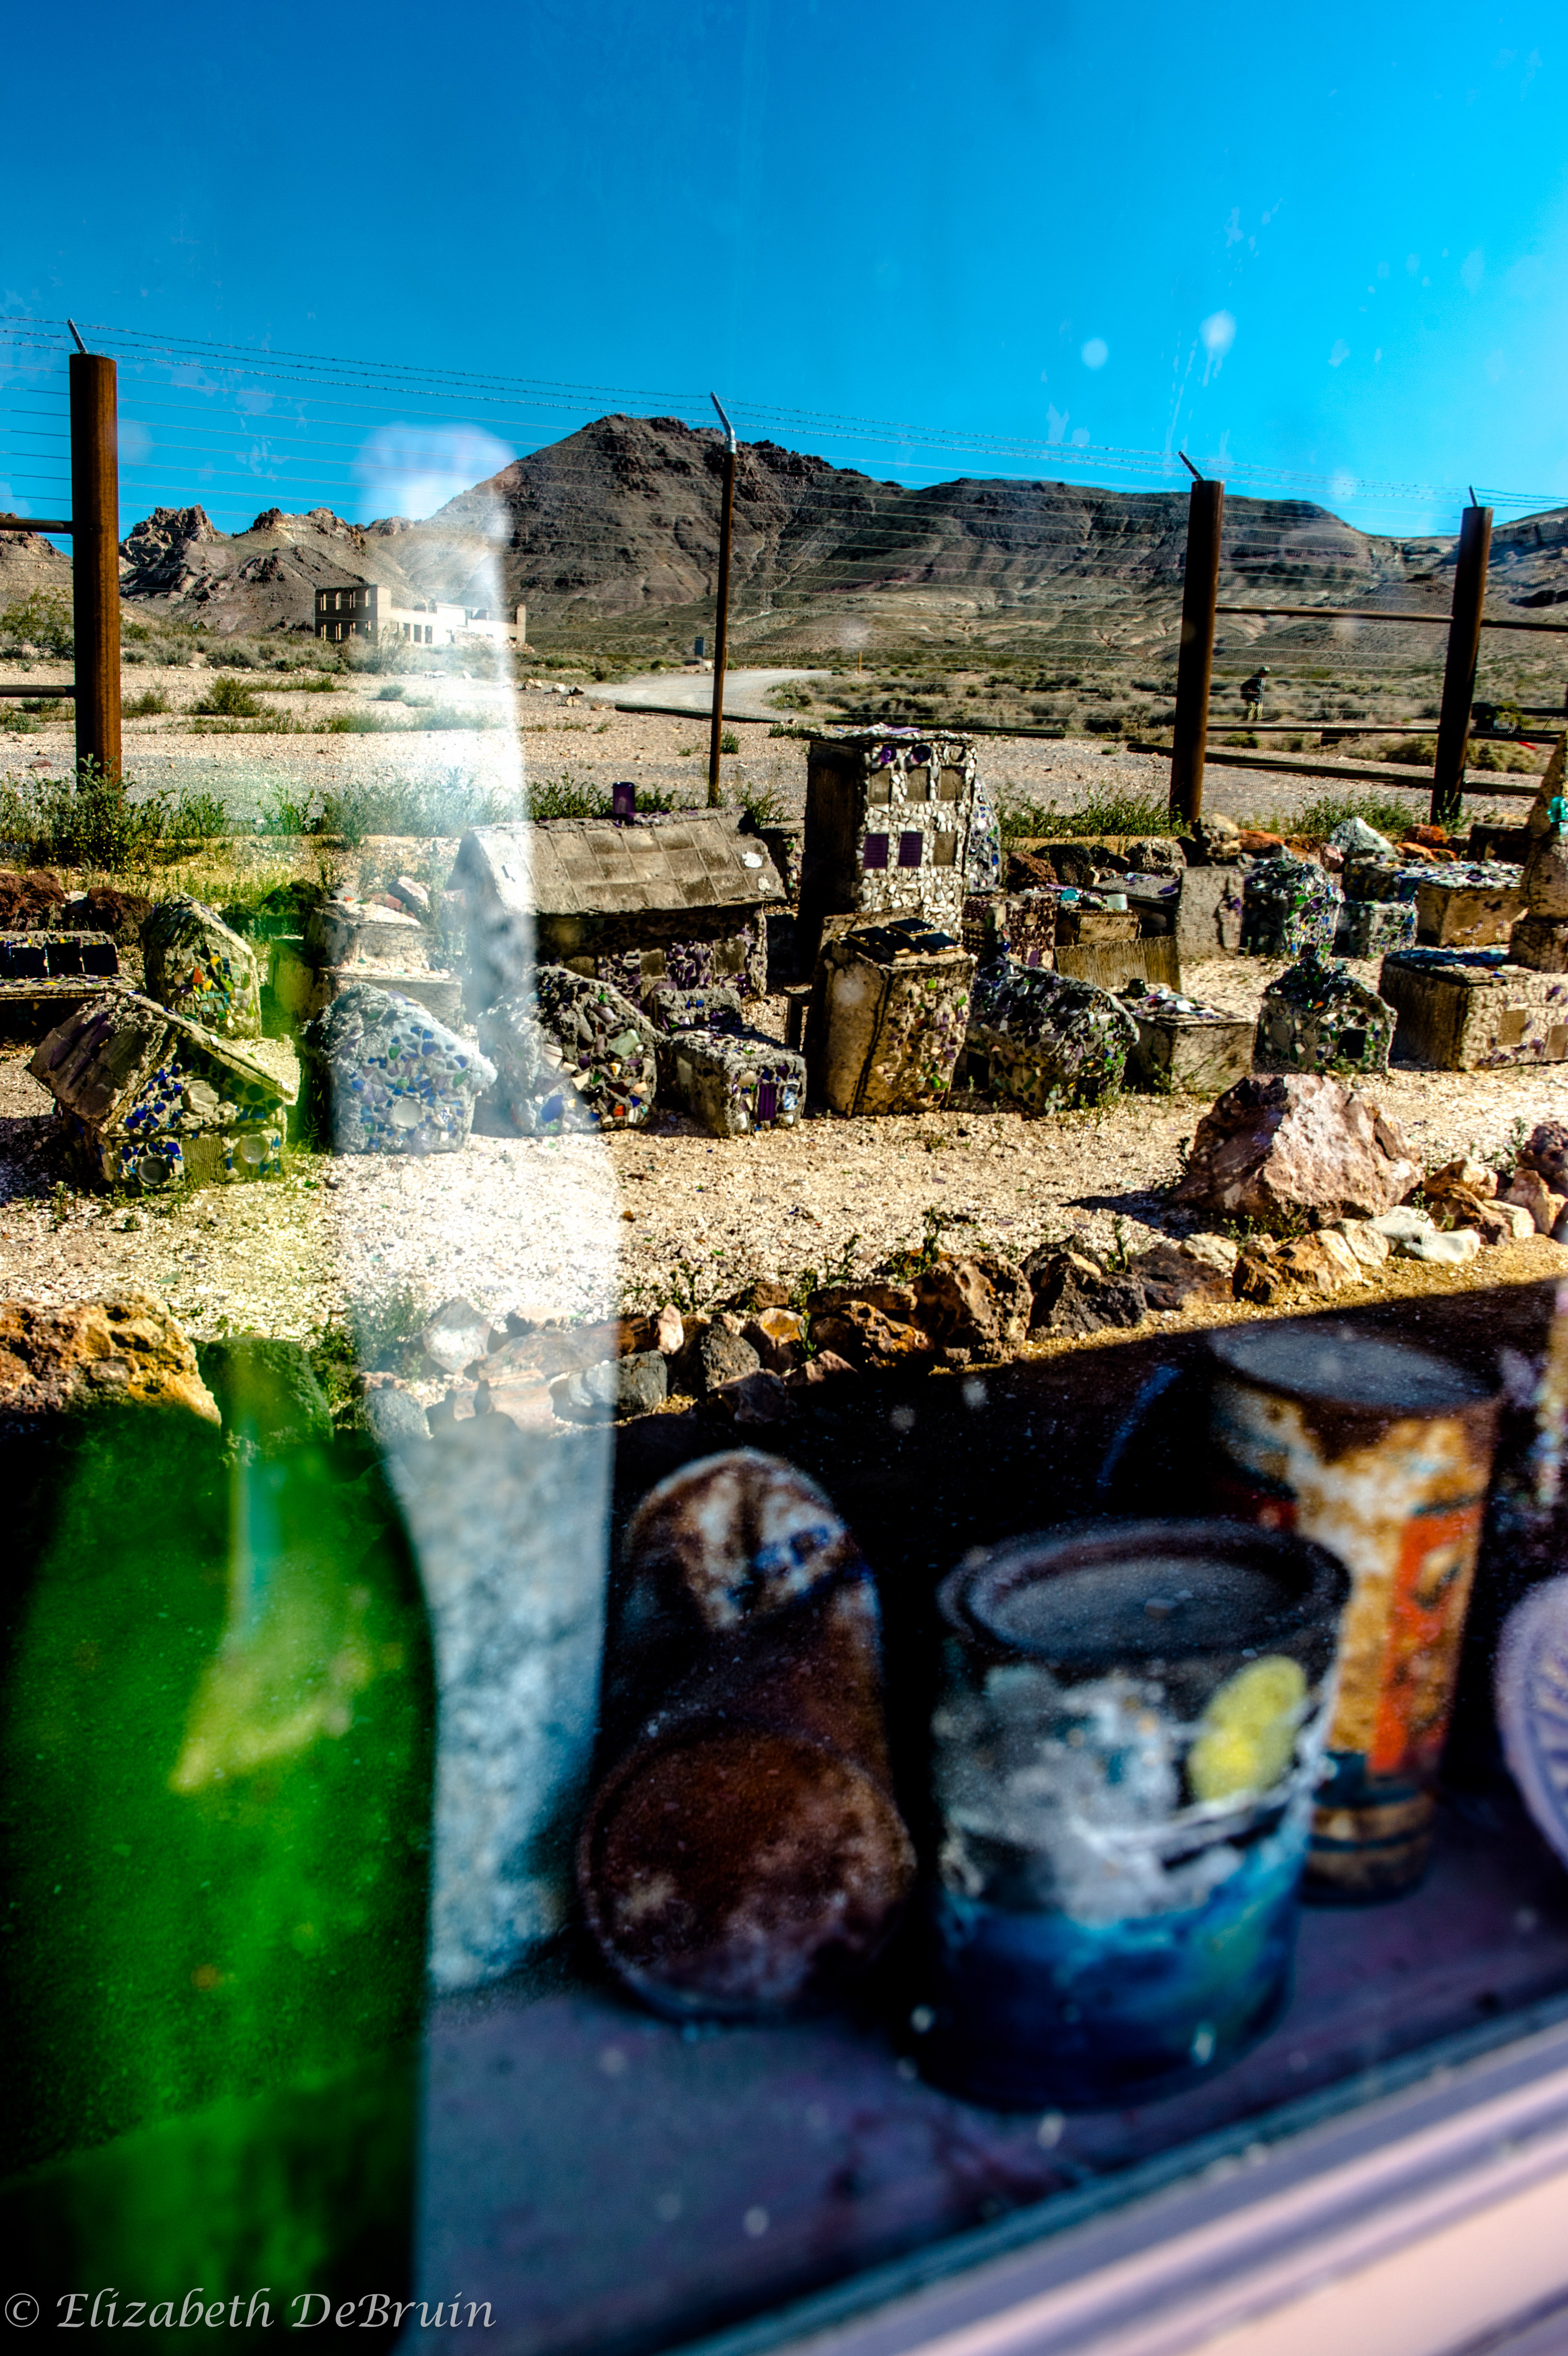 Ghost town Rhyolite as seen from the bottle house.